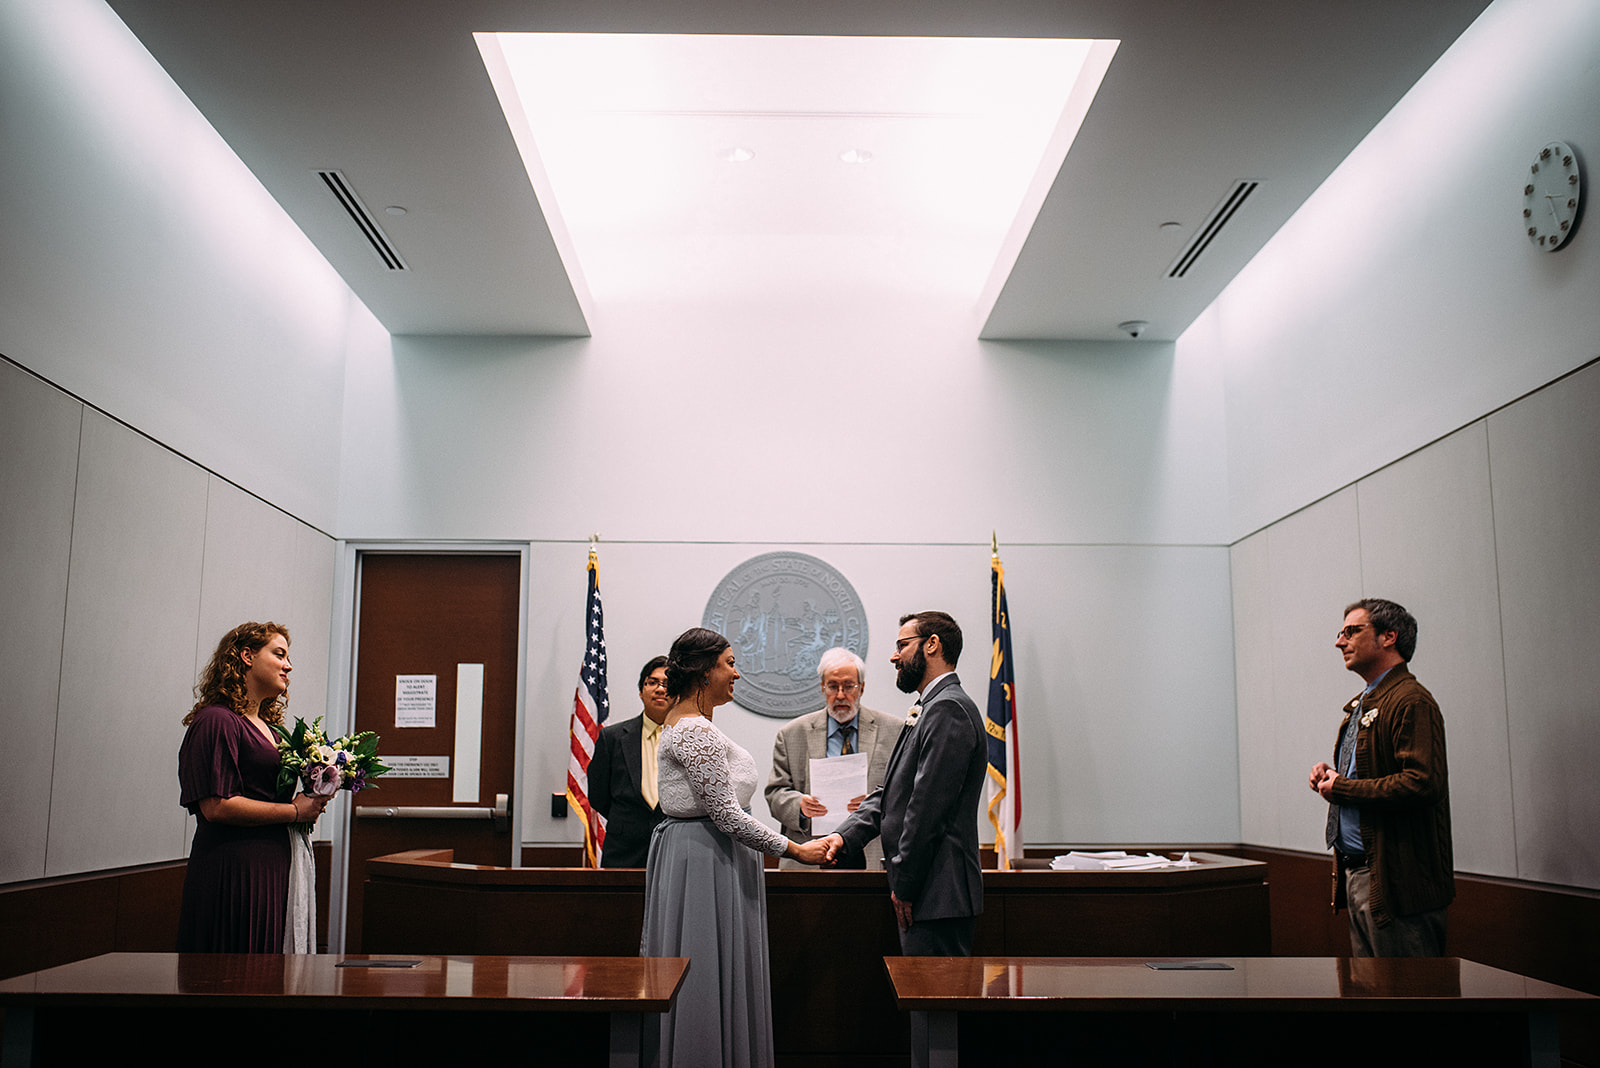 Allie _ Brian4023.jpgDurham Elopement - Durham Elopement Photographer - Courthouse Wedding - Durham Courthouse Photographer - North Carolina Photographer - North Carolina Elopement Photographer